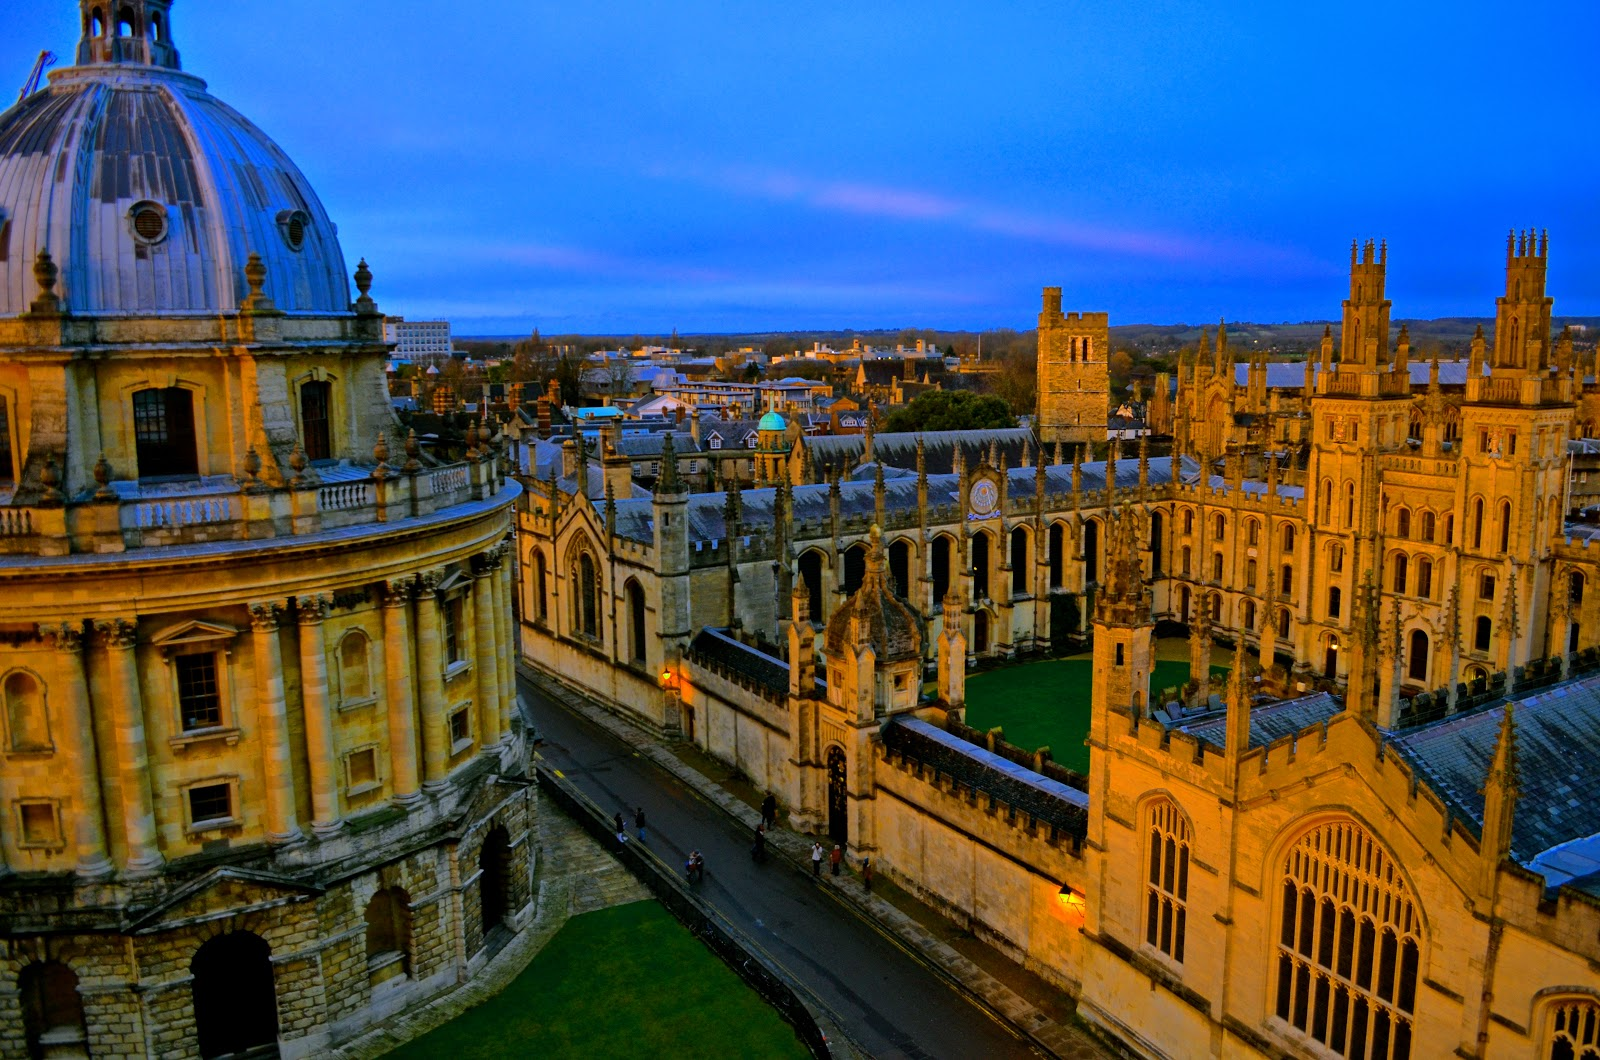 Revolution Aeia: Oxford, England